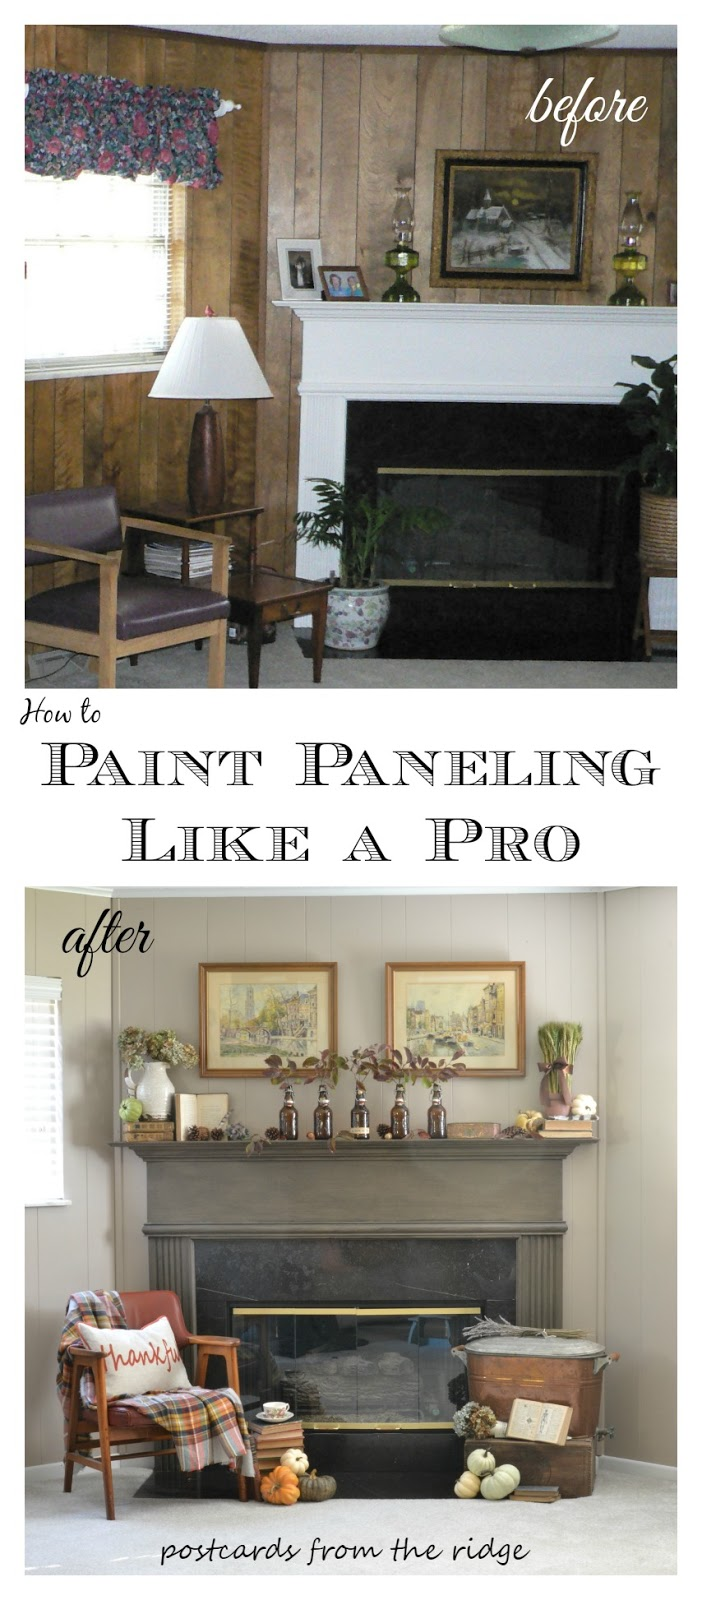 & Tutorial: How to Paint Paneling Like a Pro | Postcards from the Ridge